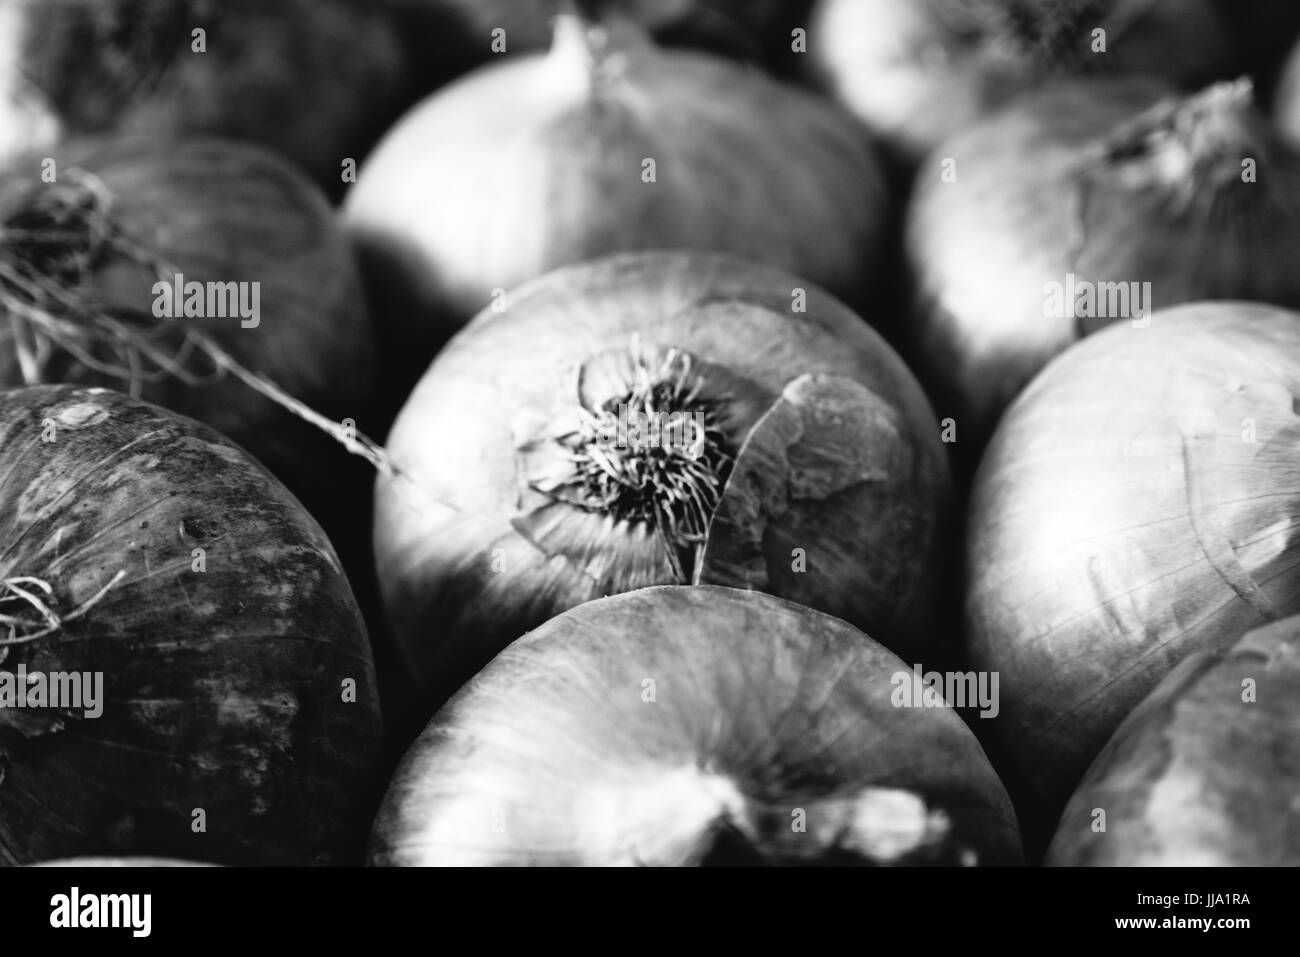 Fresh onions on display at a nearby market. - Stock Image